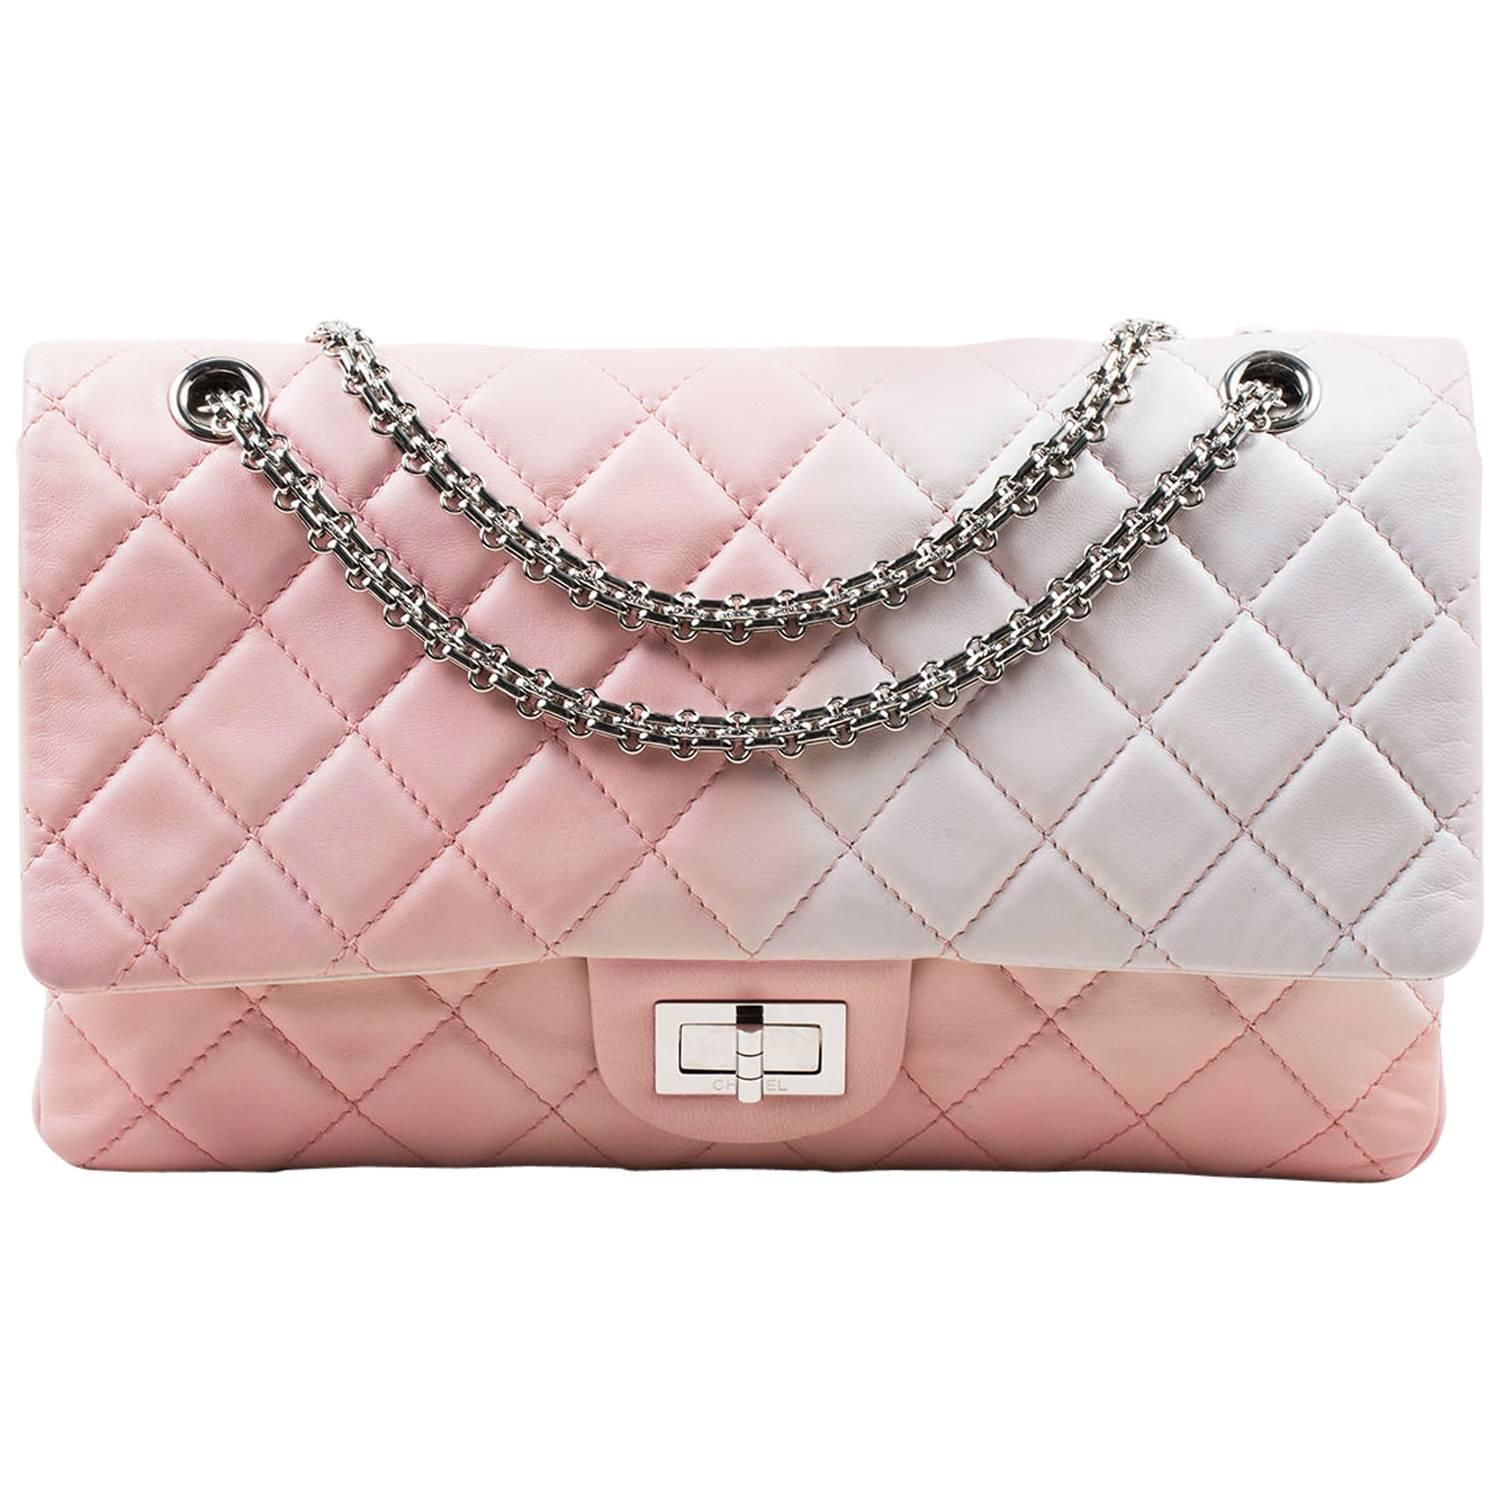 59e7d48a83f6 Chanel Pink White Leather Ombre Degradé